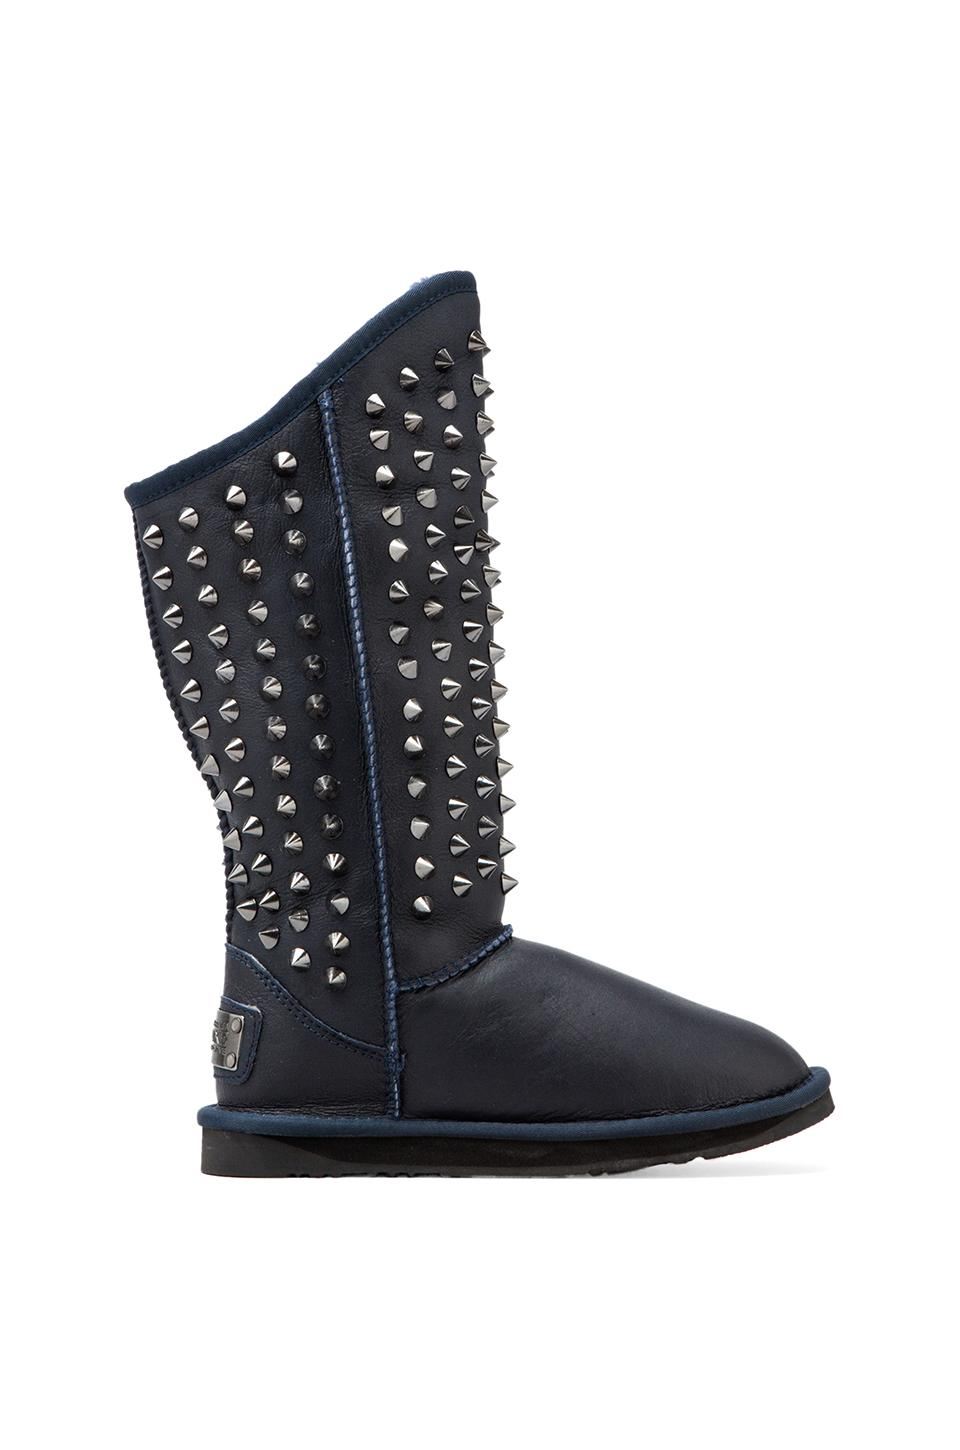 Australia Luxe Collective Pistol Tall Boot with Sheepskin in Navy